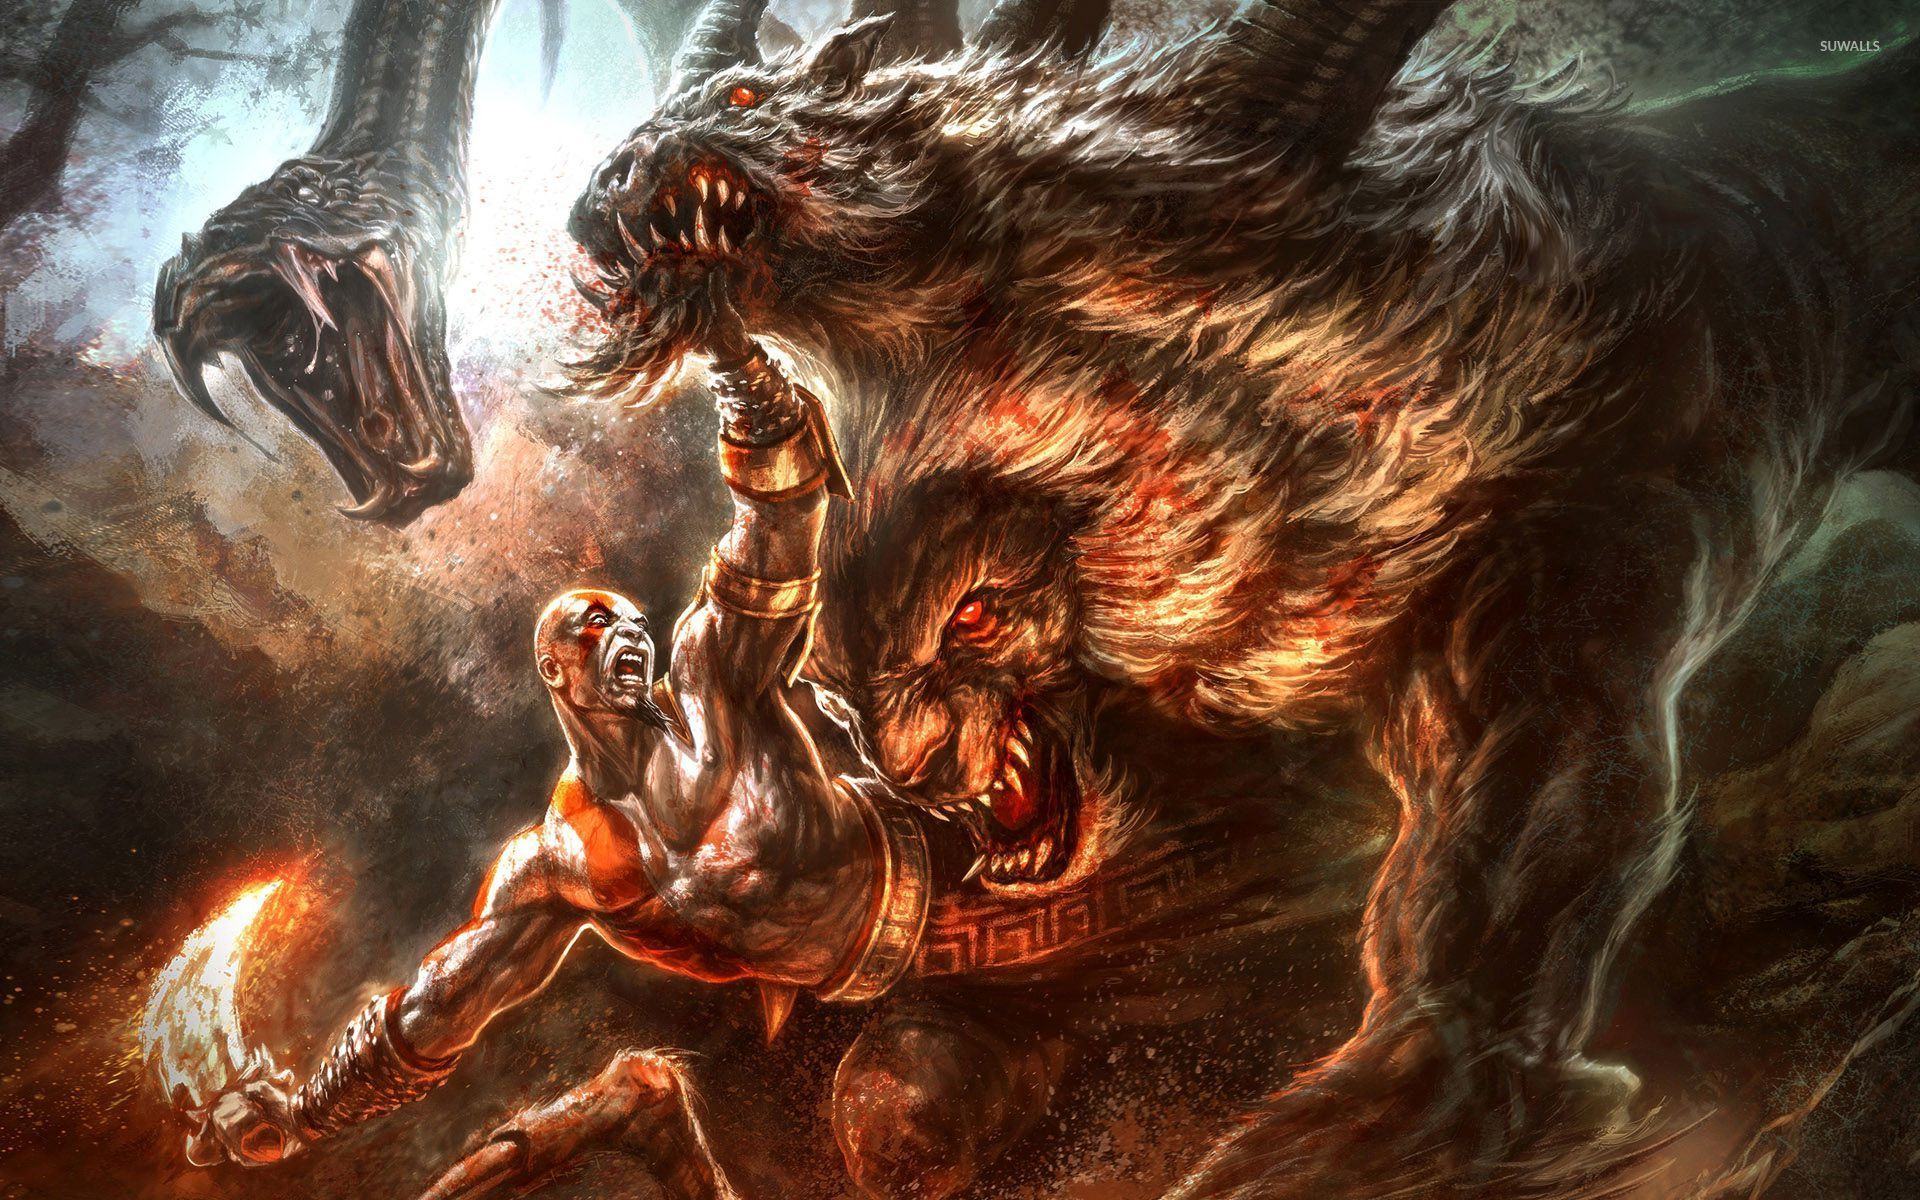 Fighting kratos in god of war wallpaper game wallpapers 54473 fighting kratos in god of war wallpaper voltagebd Choice Image